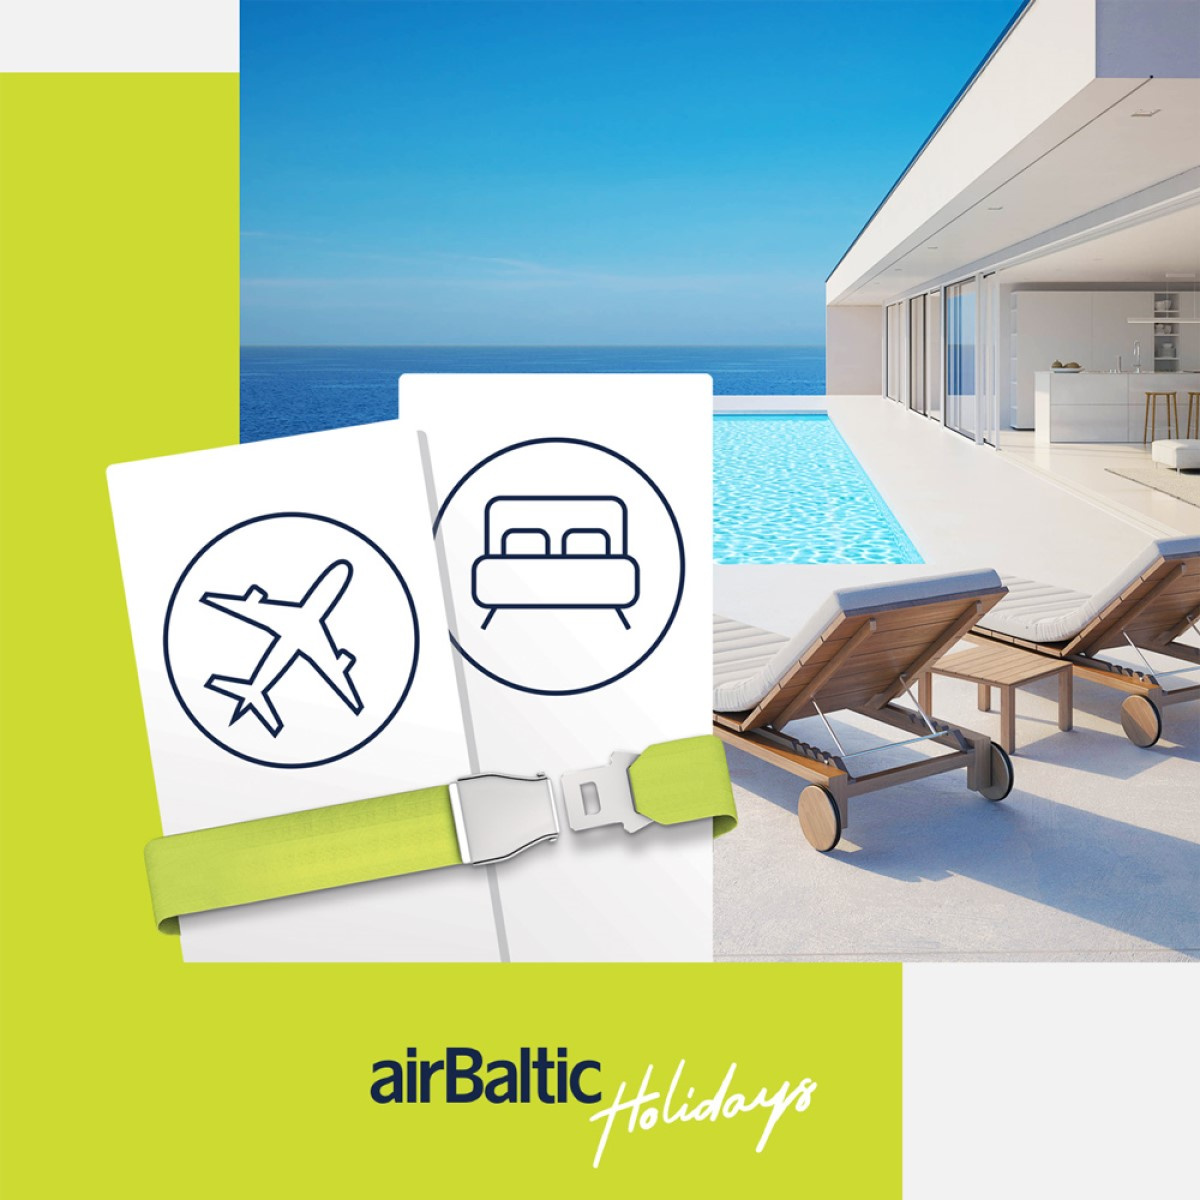 Book a flight + hotel packages and earn 5 points per euro spent image